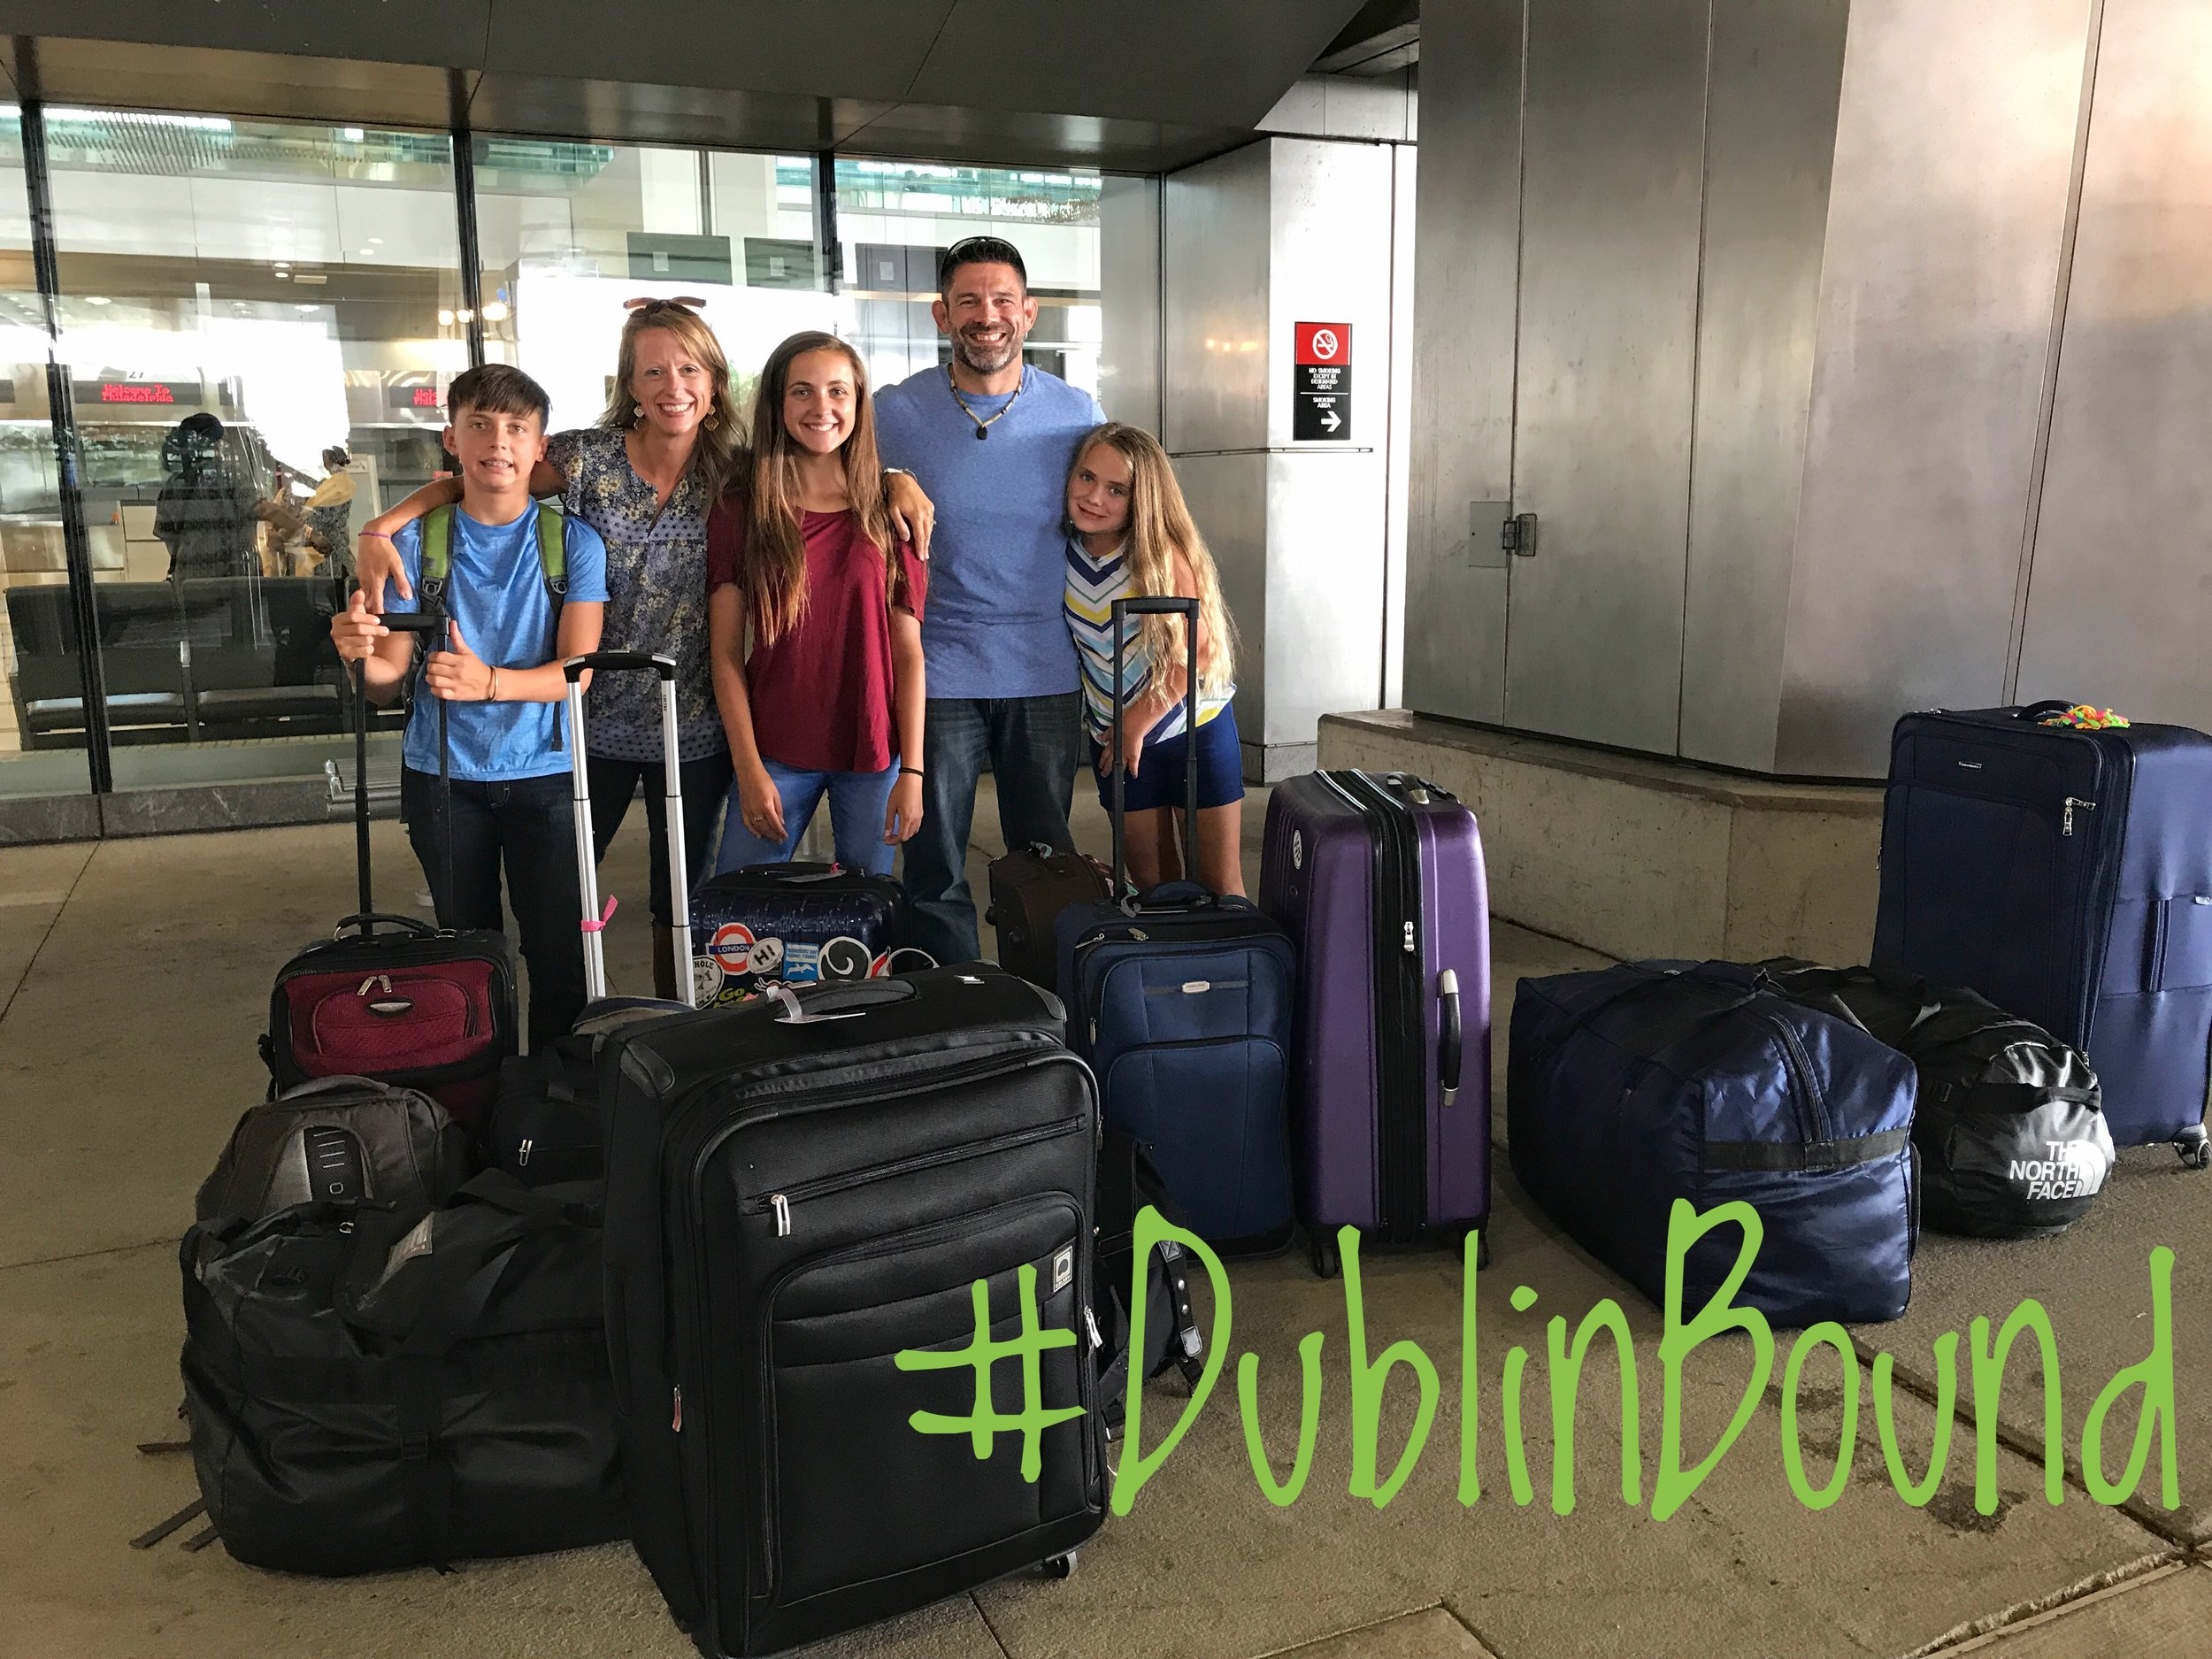 Outside the Philadelphia airport with our 15 pieces of luggage ready for the adventure of our lives!